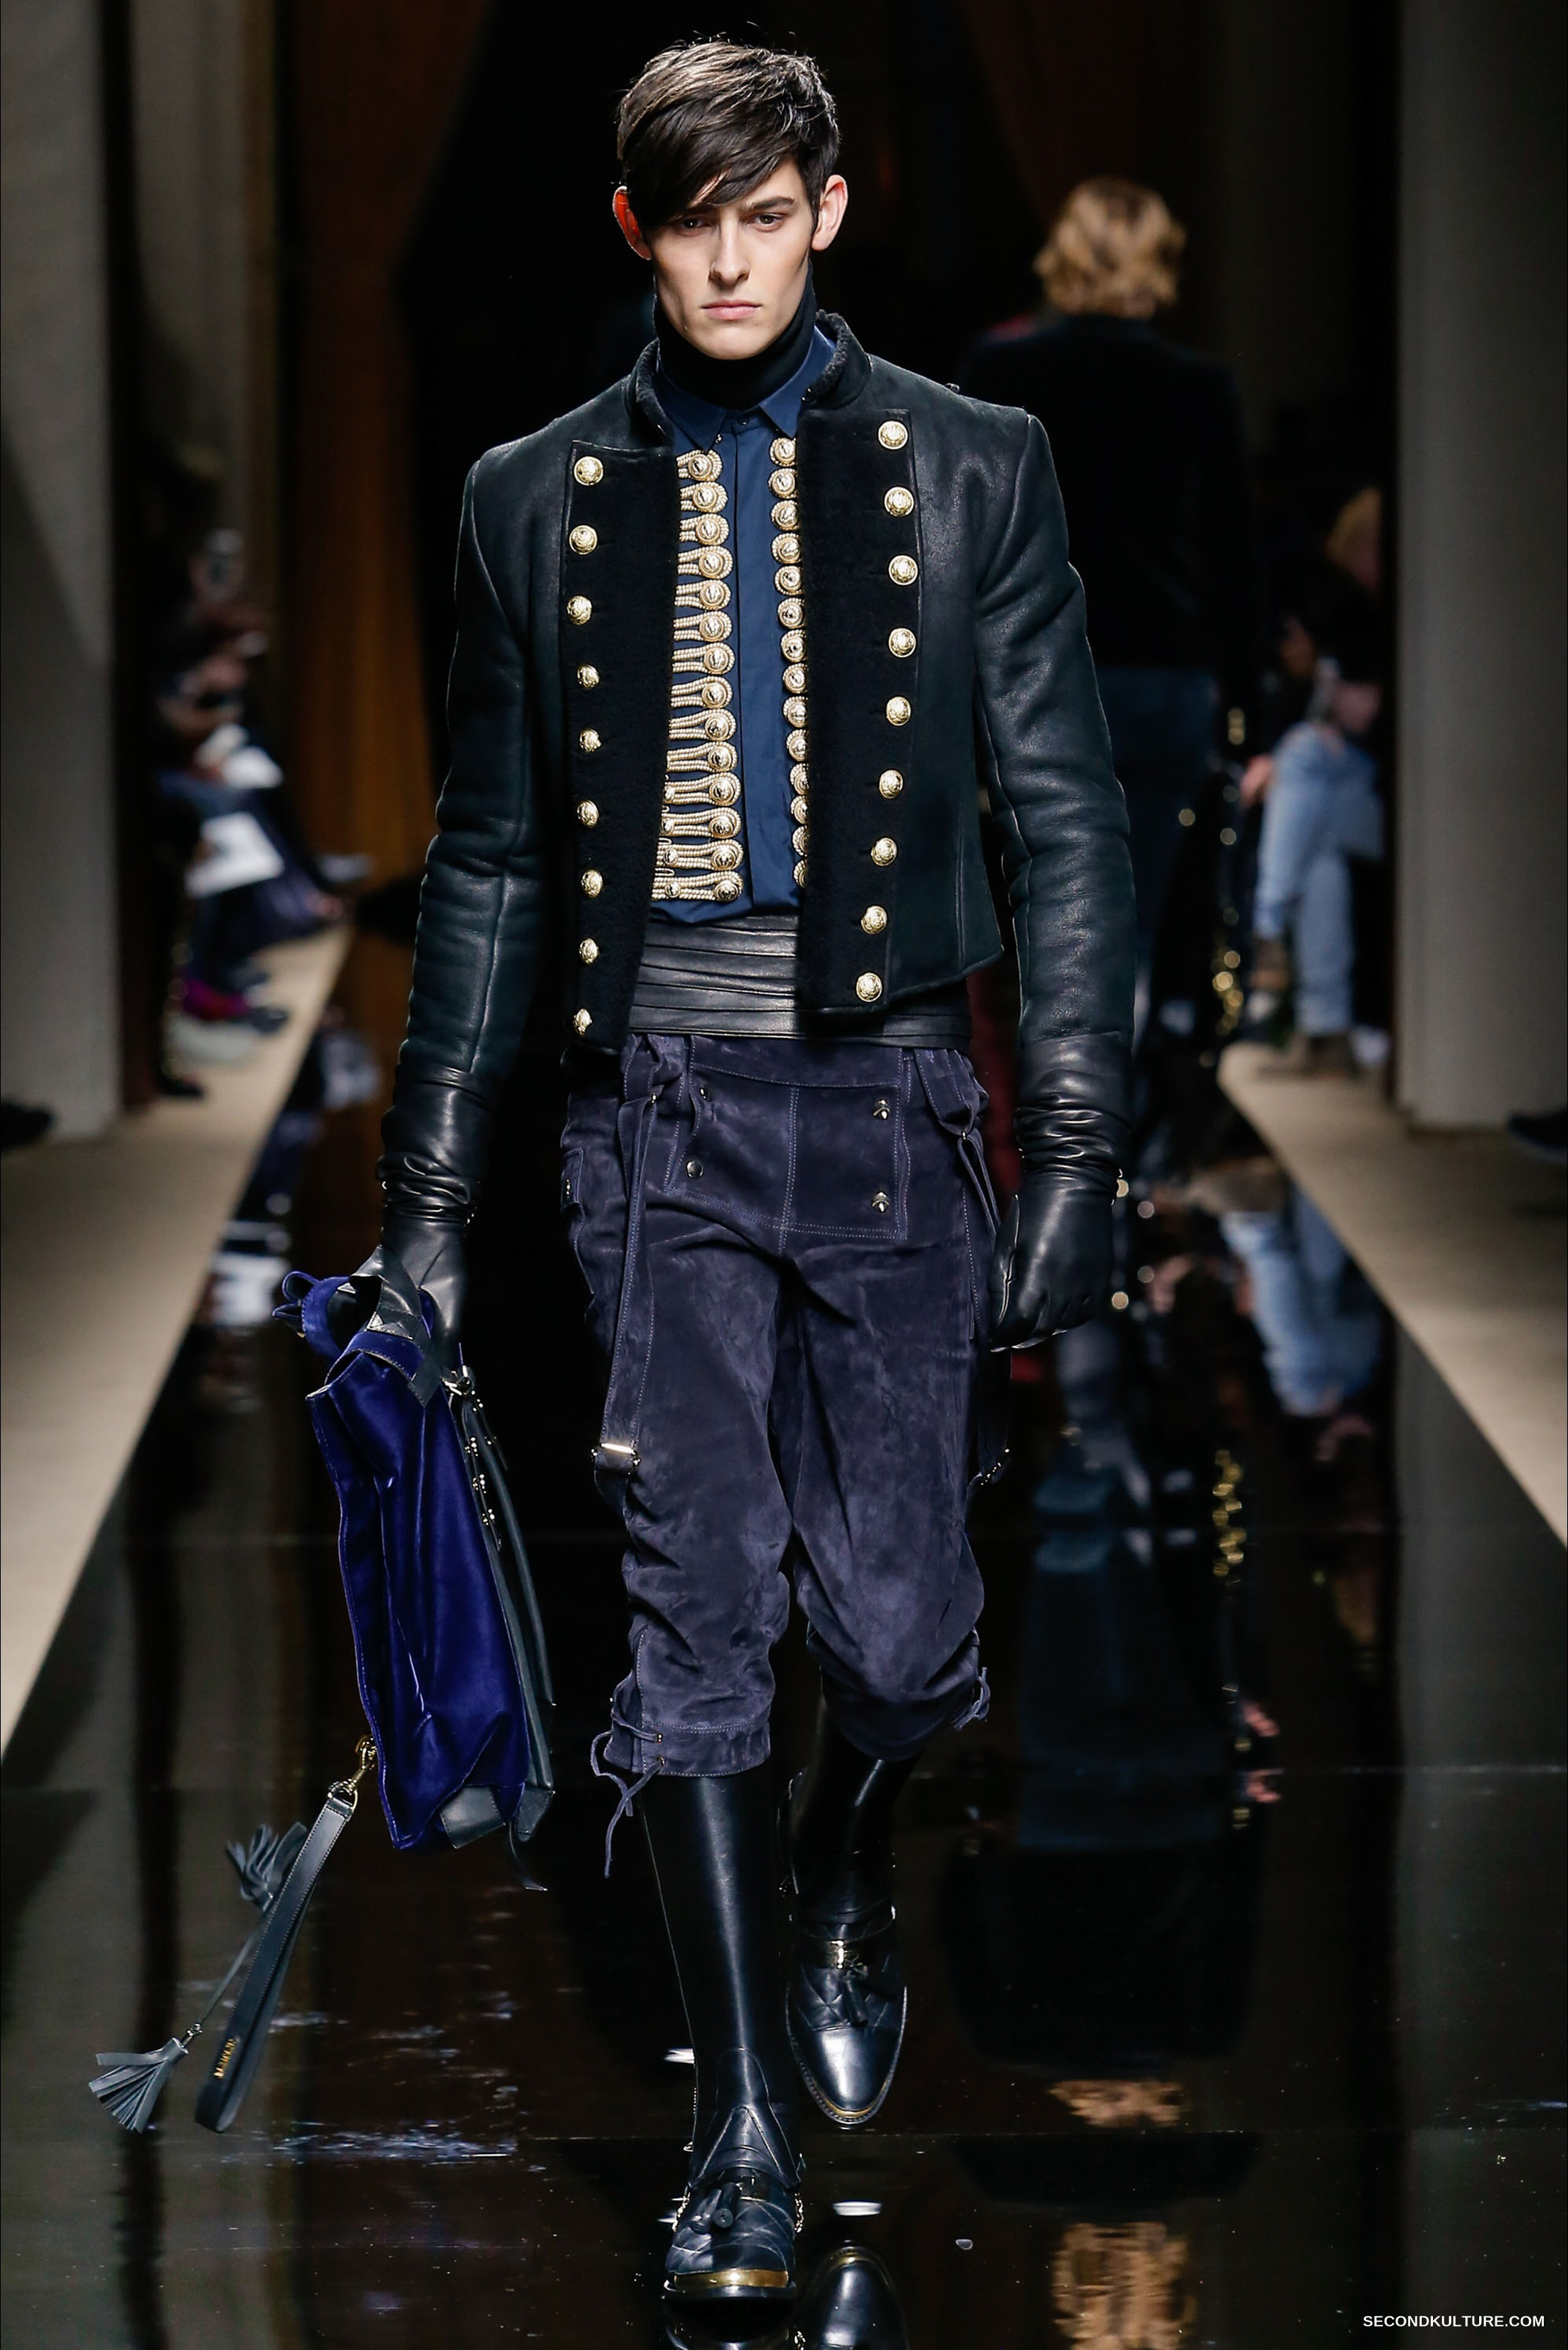 Edgy and military-inspired, French fashion house Balmain has gained a cult following since Olivier Rousteing took over as Creative Director. From classic biker jackets and distressed denim to studded T-shirts and sweatshirts, the brand's men's clothing line is infused with directional glamour.